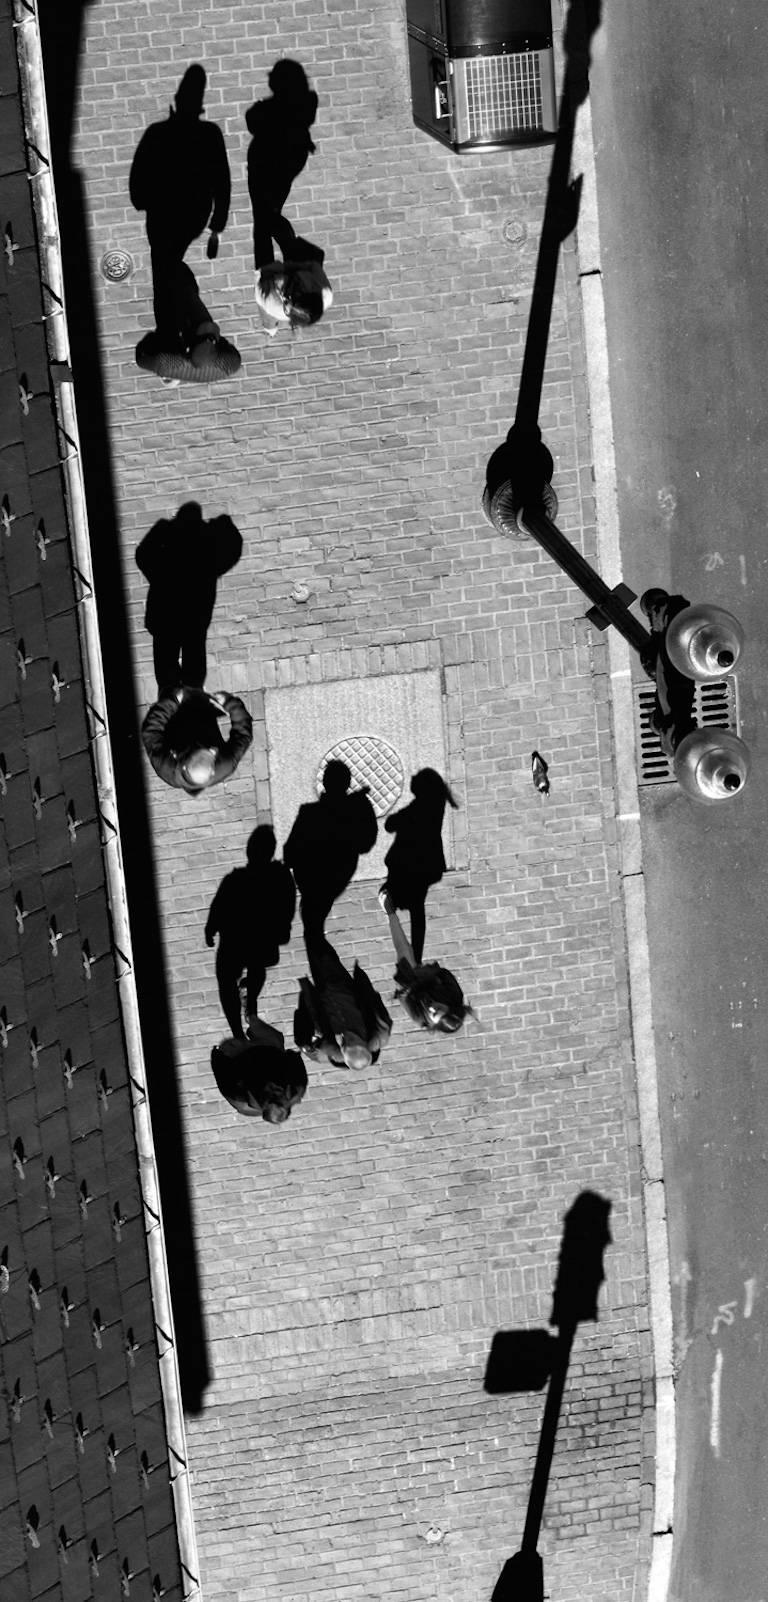 Cassandra zampini birds eye fine art urban photograph black and white contemporary photograph for sale at 1stdibs